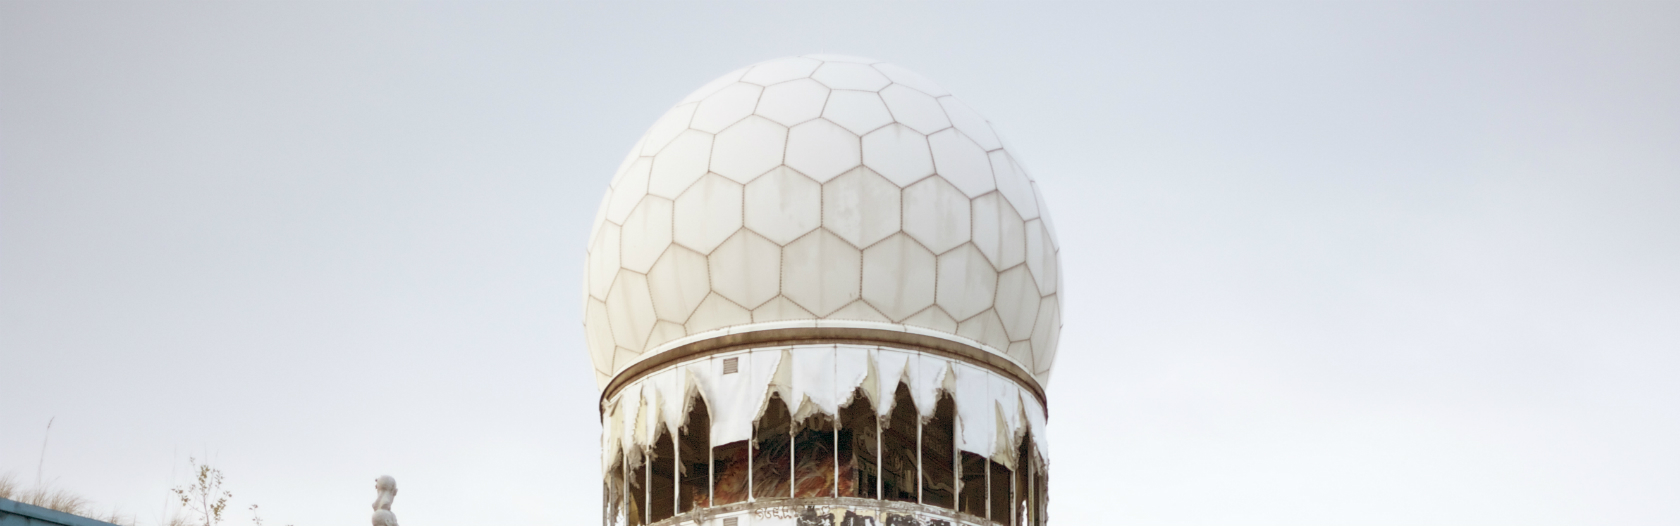 Teufelsberg_highlight